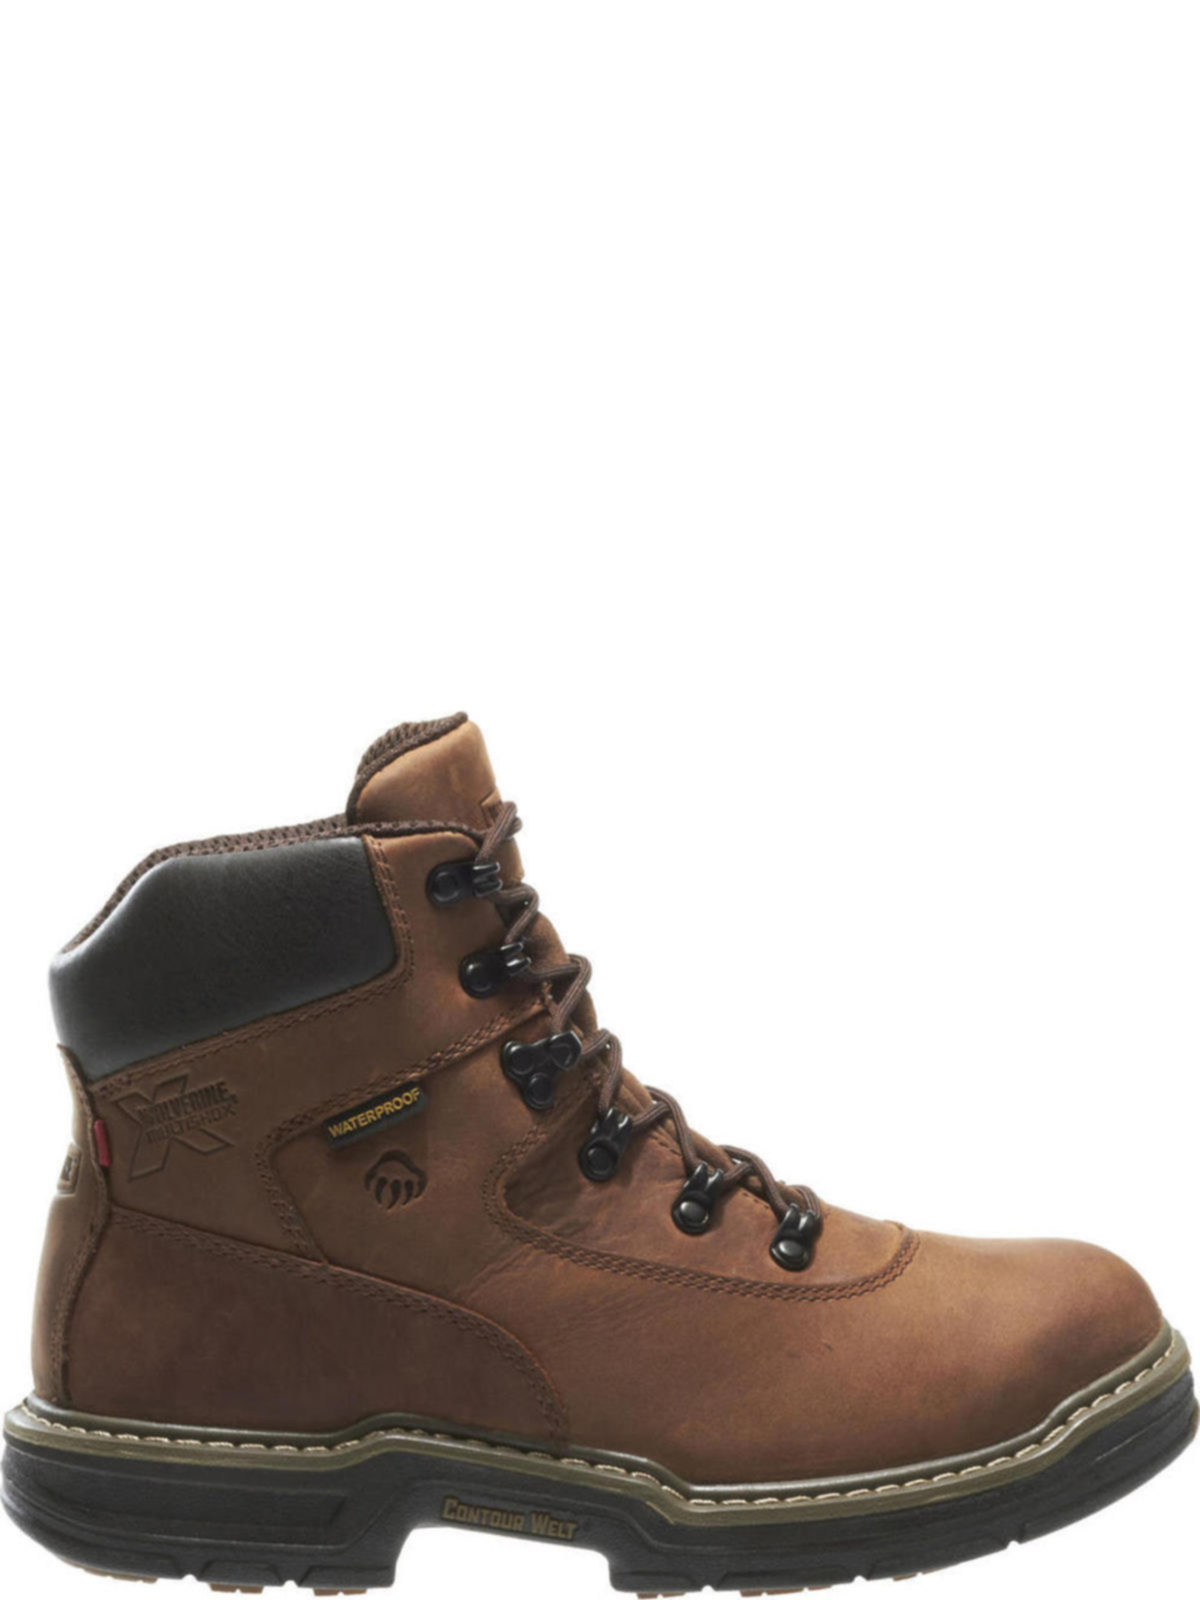 043fdb3a013 Wolverine Mens Marauder Waterproof Lace Up 6